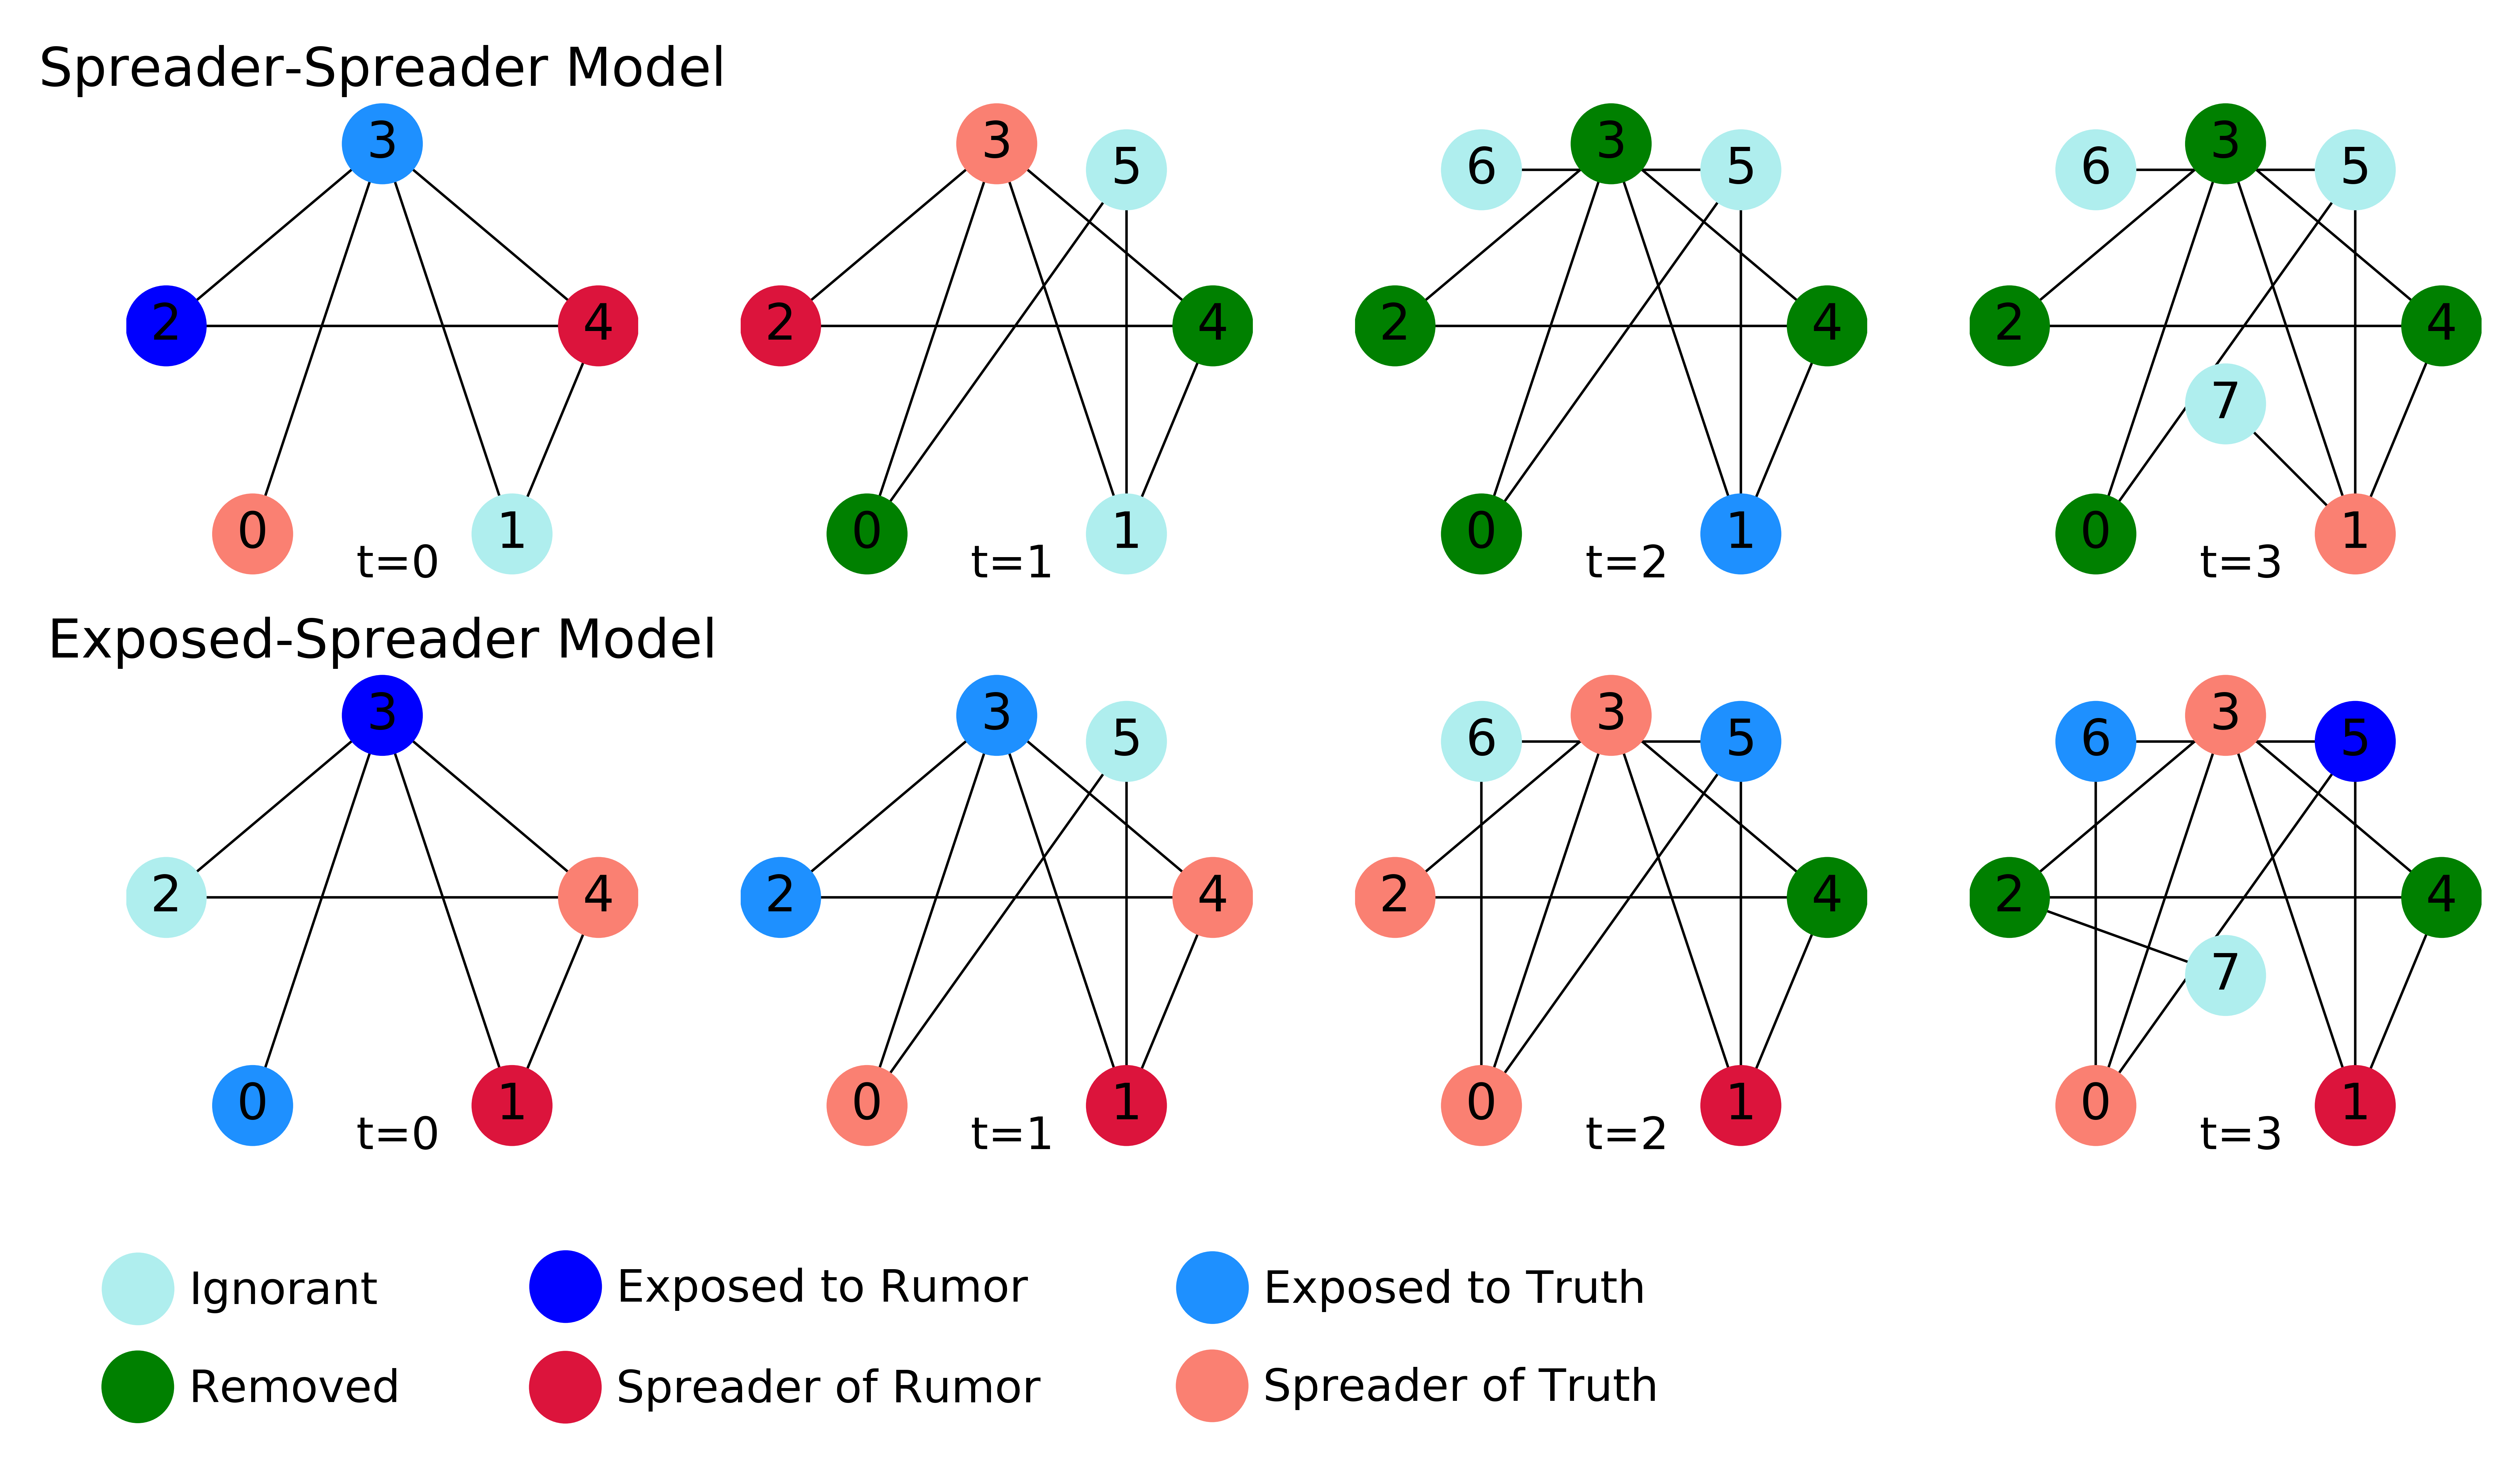 Toy network model of ignorant, exposed to, and spreader nodes.